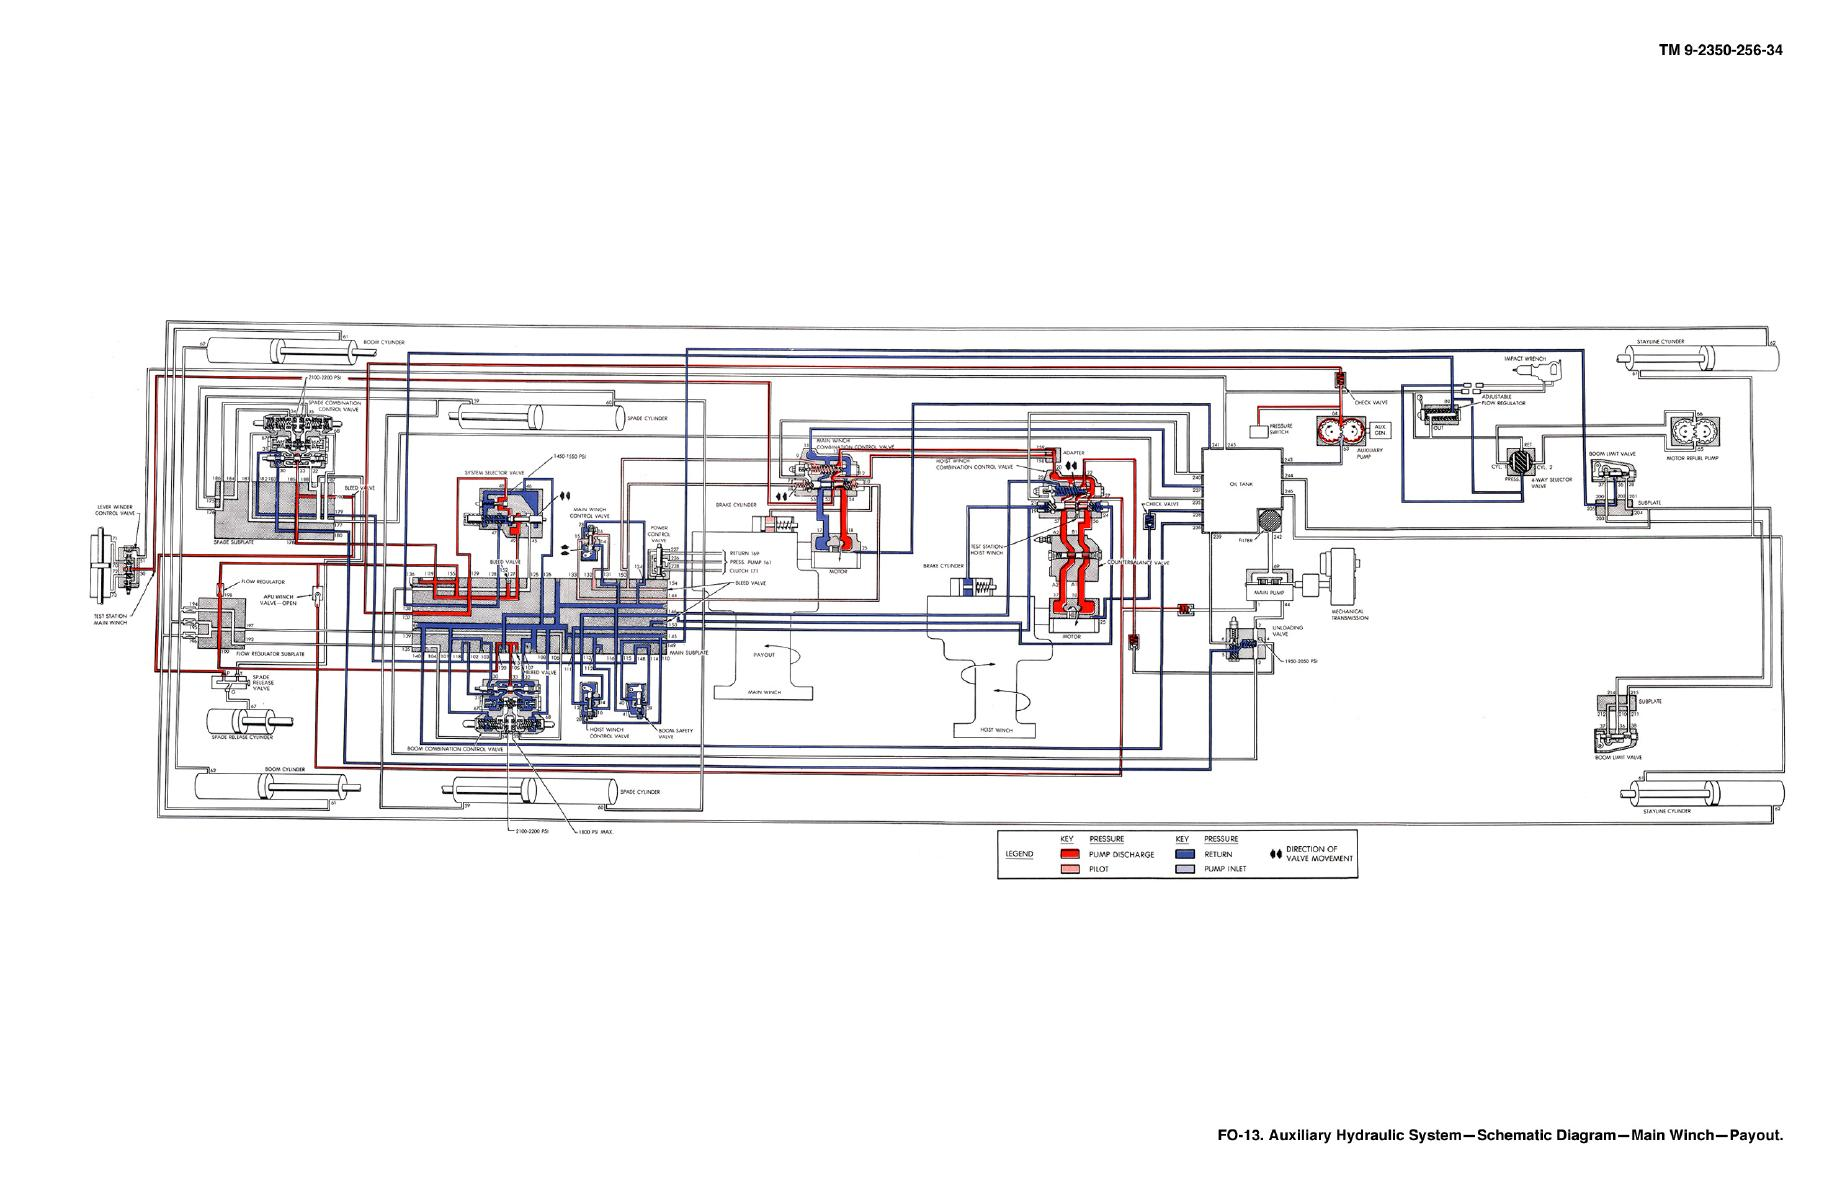 mile marker hydraulic winch wiring diagram ionic bond dot schematics get free image about